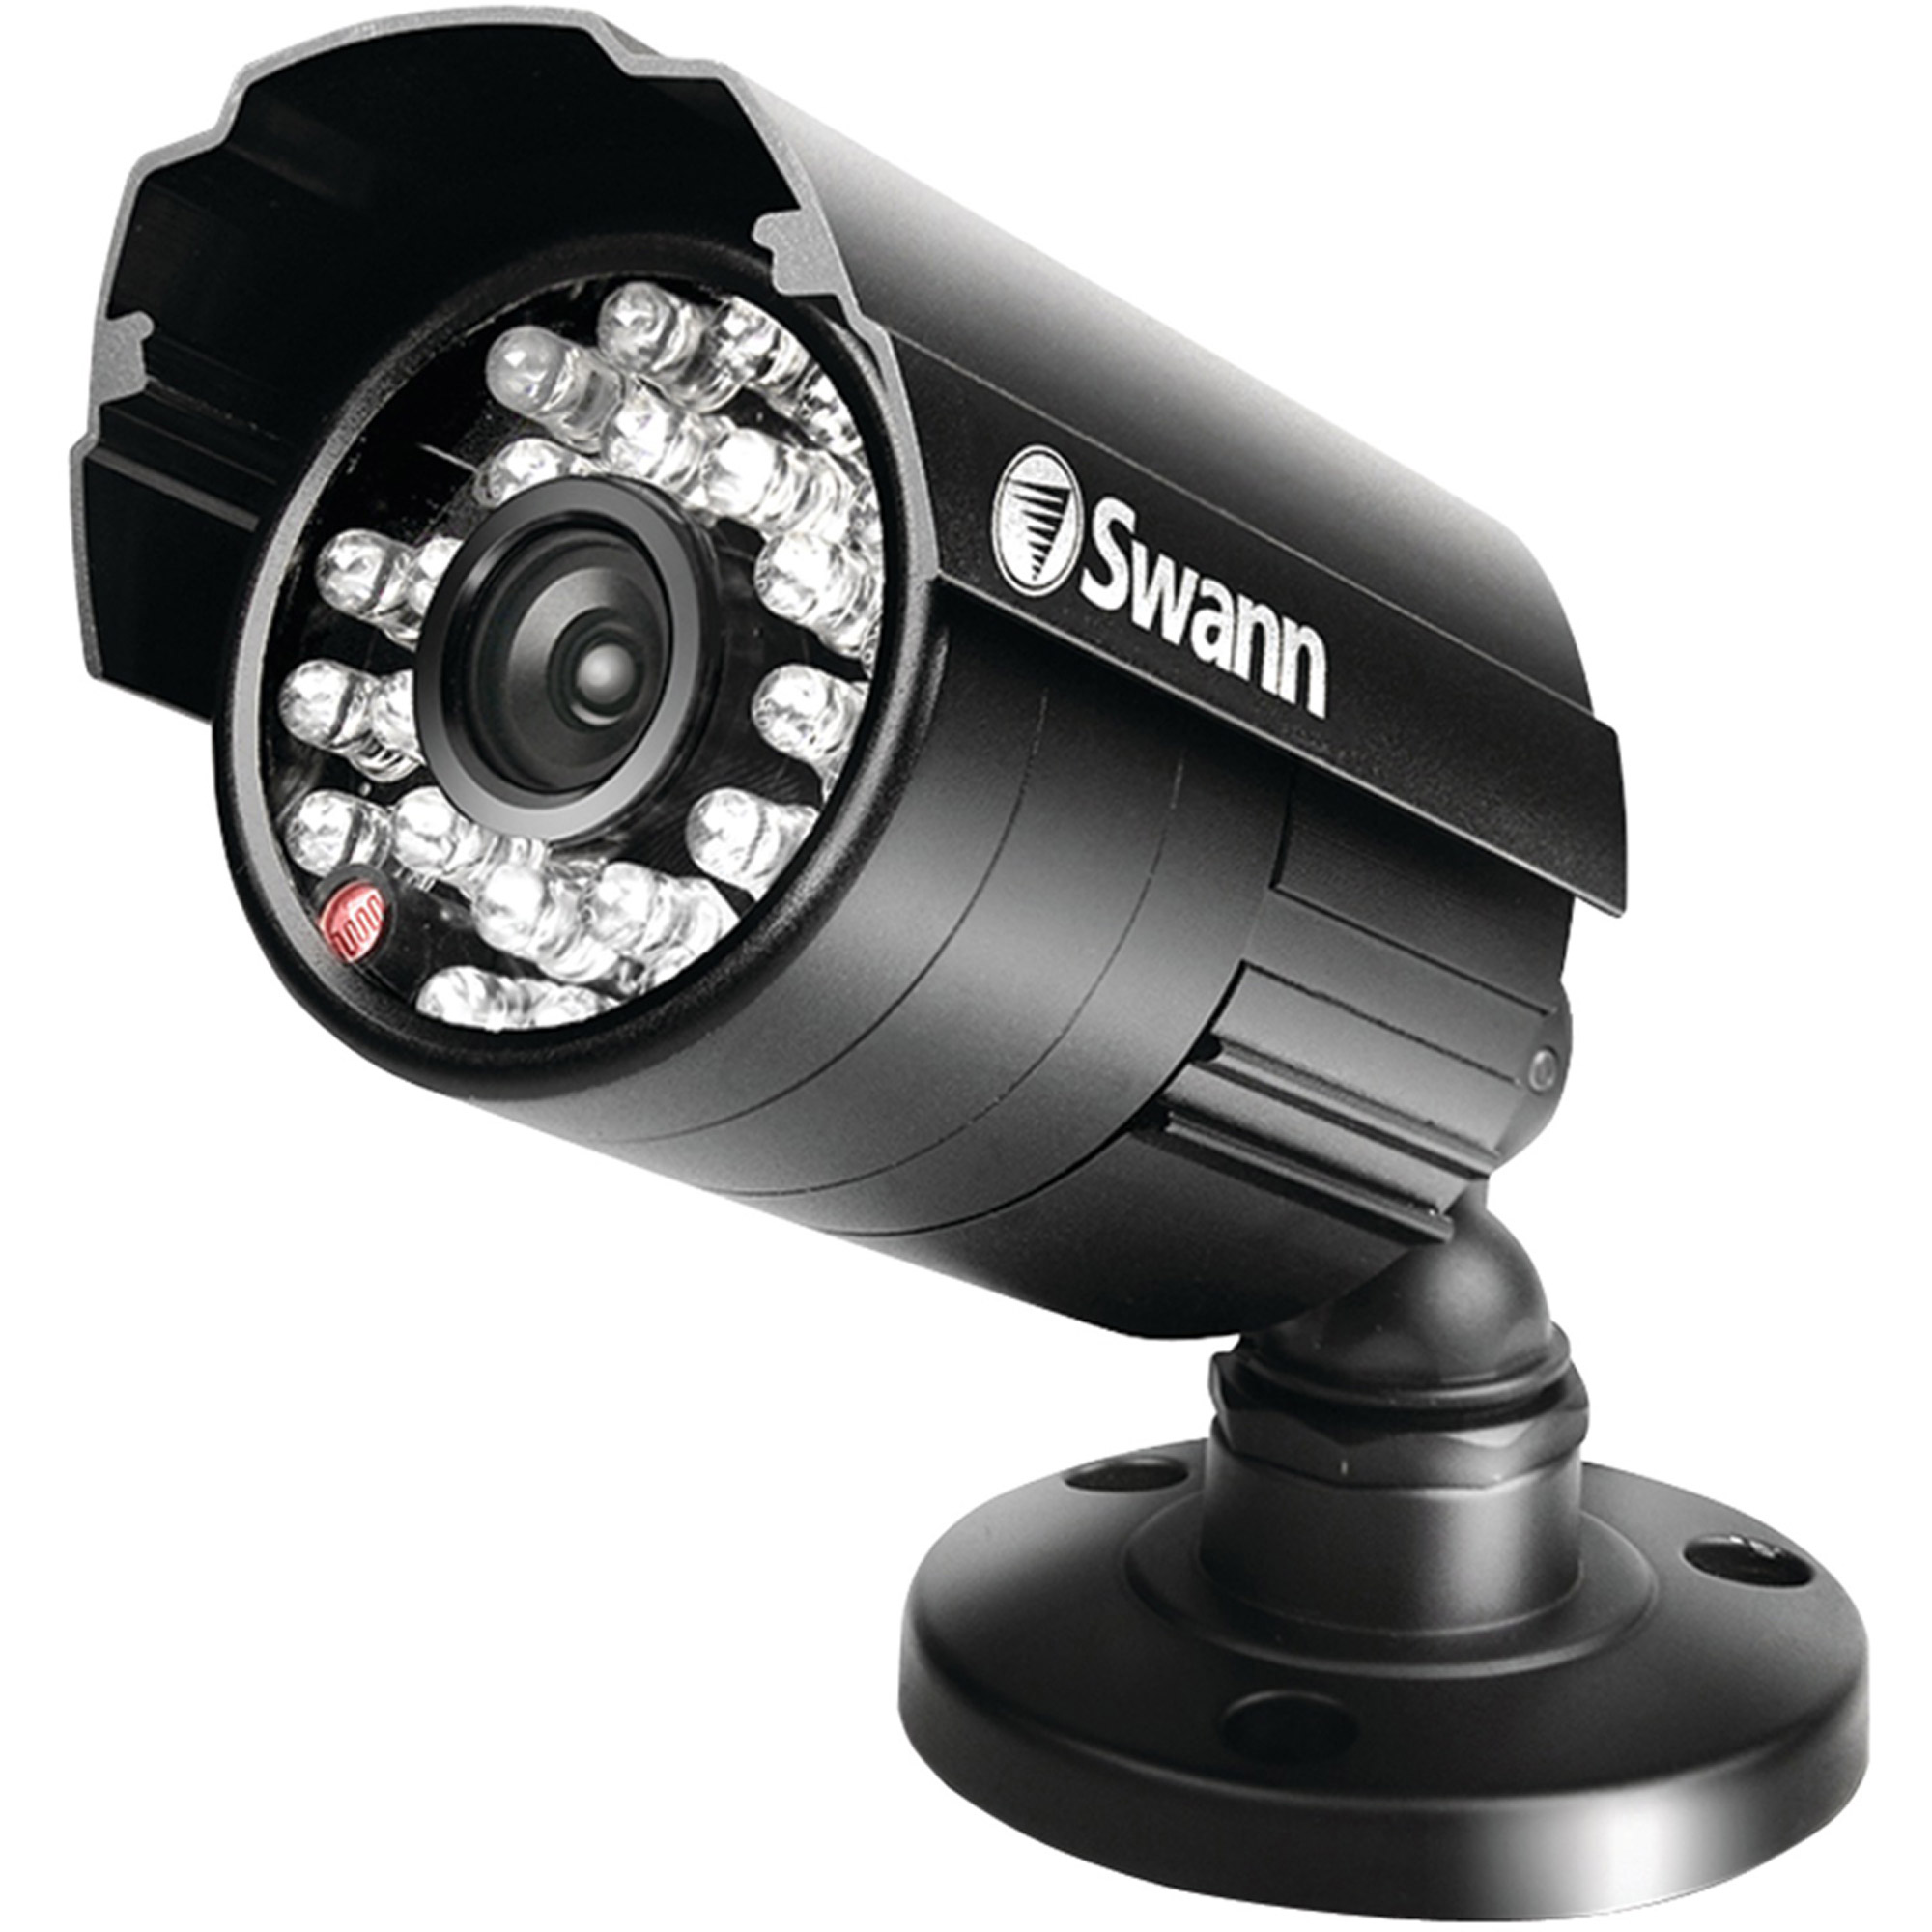 Swann SWPRO-615CAM PRO-615 650TVL Security Camera